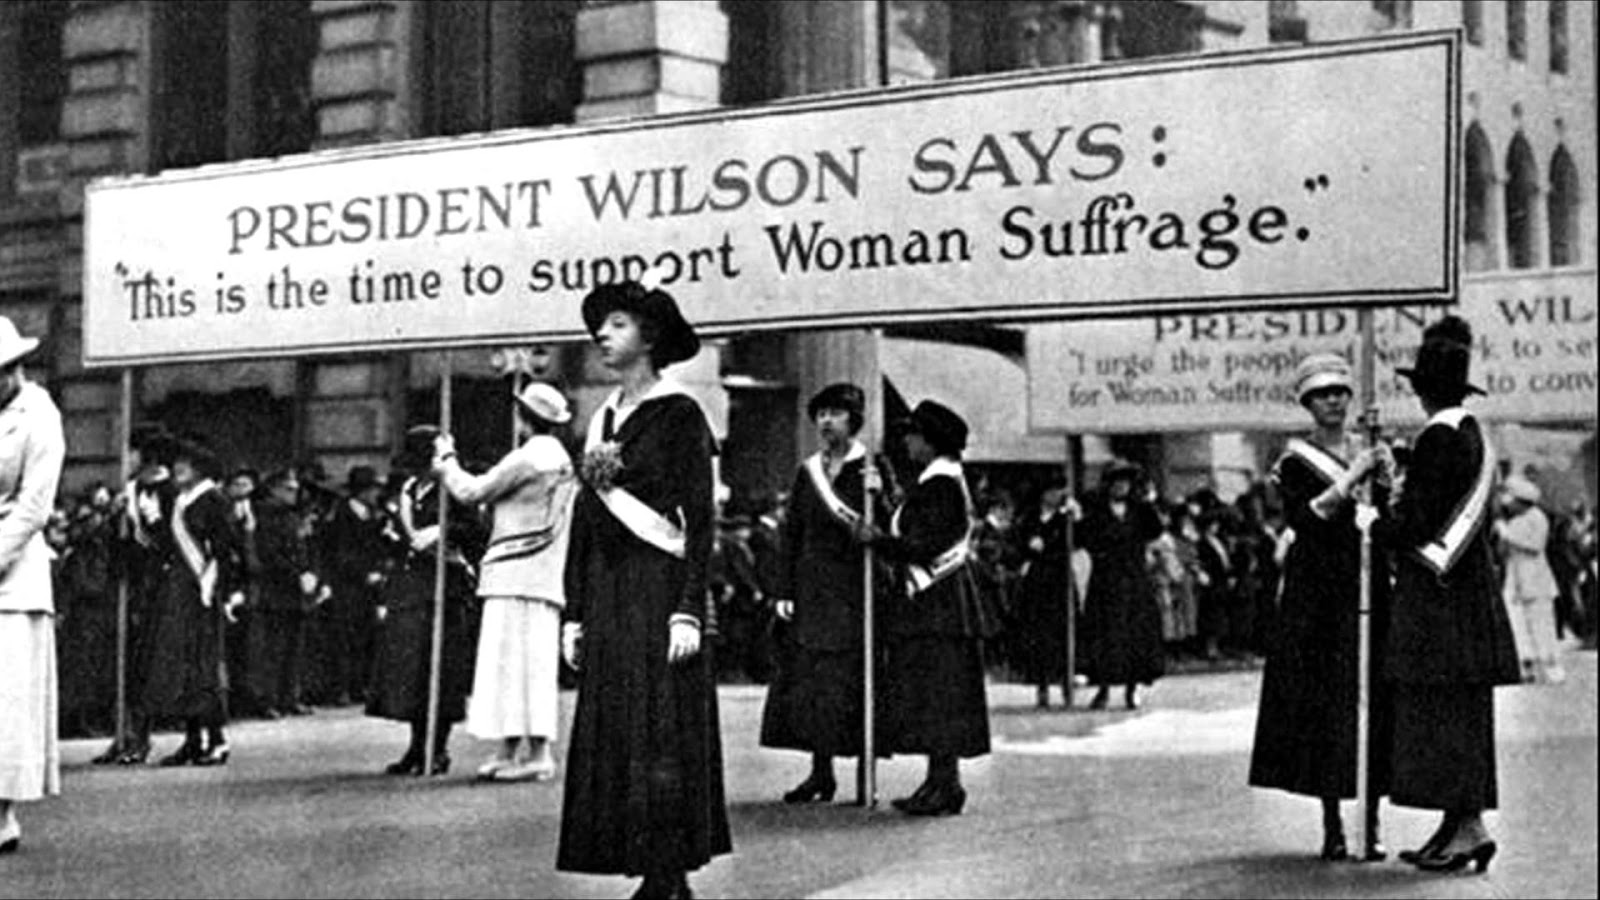 an analysis of the womens suffrage party in the united states of america For more than a century, women in the united states struggled to obtain the right to vote as they sought to claim their rights as citizens, they confronted deeply entrenched prejudices against women's participation in political lifein 1920, the suffrage movement finally achieved victory with the ratification of the nineteenth amendment to.